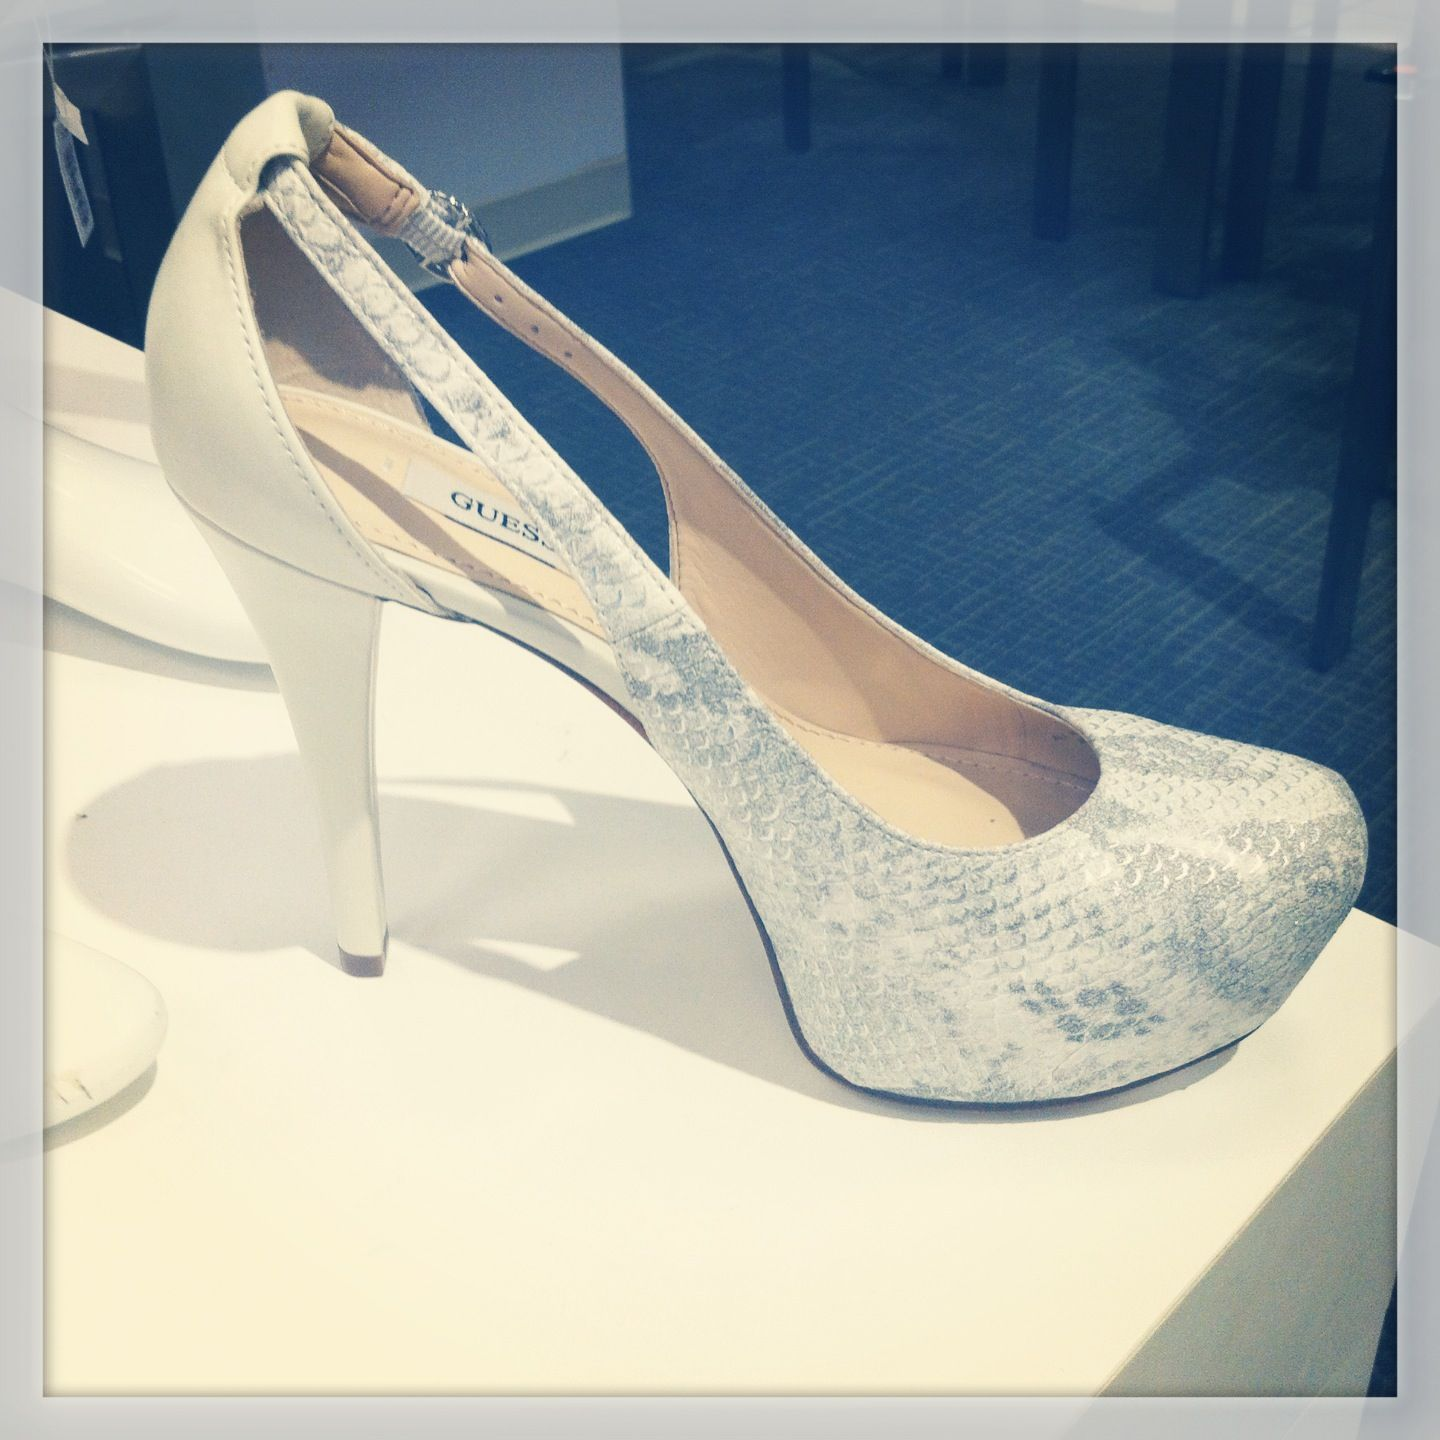 MUST HAVE ADORABLE WHITE GUESS HEELS - SO CUTE!